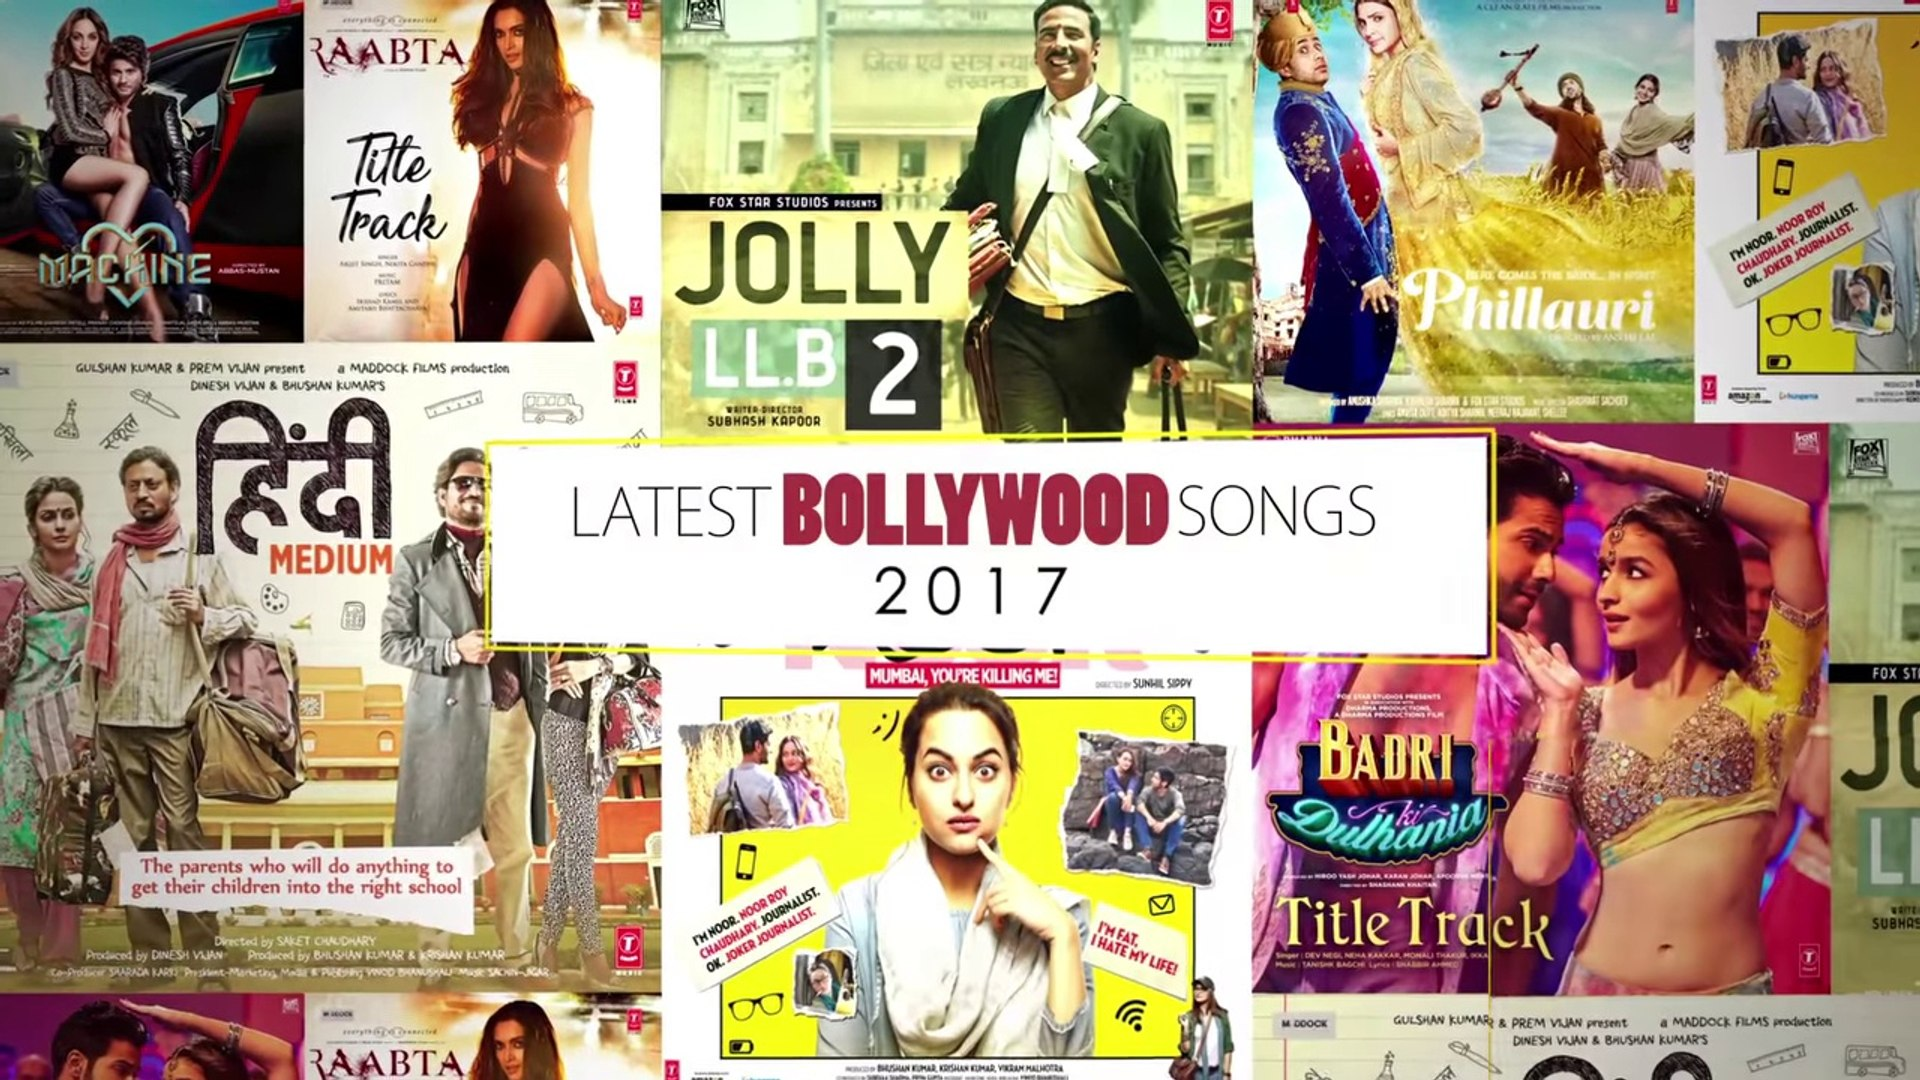 Latest Bollywood Songs Hd Full Songs 10 Hit Songs New Hindi Songs Video Jukebox Pk Hungama Masti Official Channel Video Dailymotion New hindi bollywood songs of 2020 2021 hindi mp3 songs videos top hindi songs of indian movies films new released hindi songs list best indian songs year. latest bollywood songs hd full songs 10 hit songs new hindi songs video jukebox pk hungama masti official channel